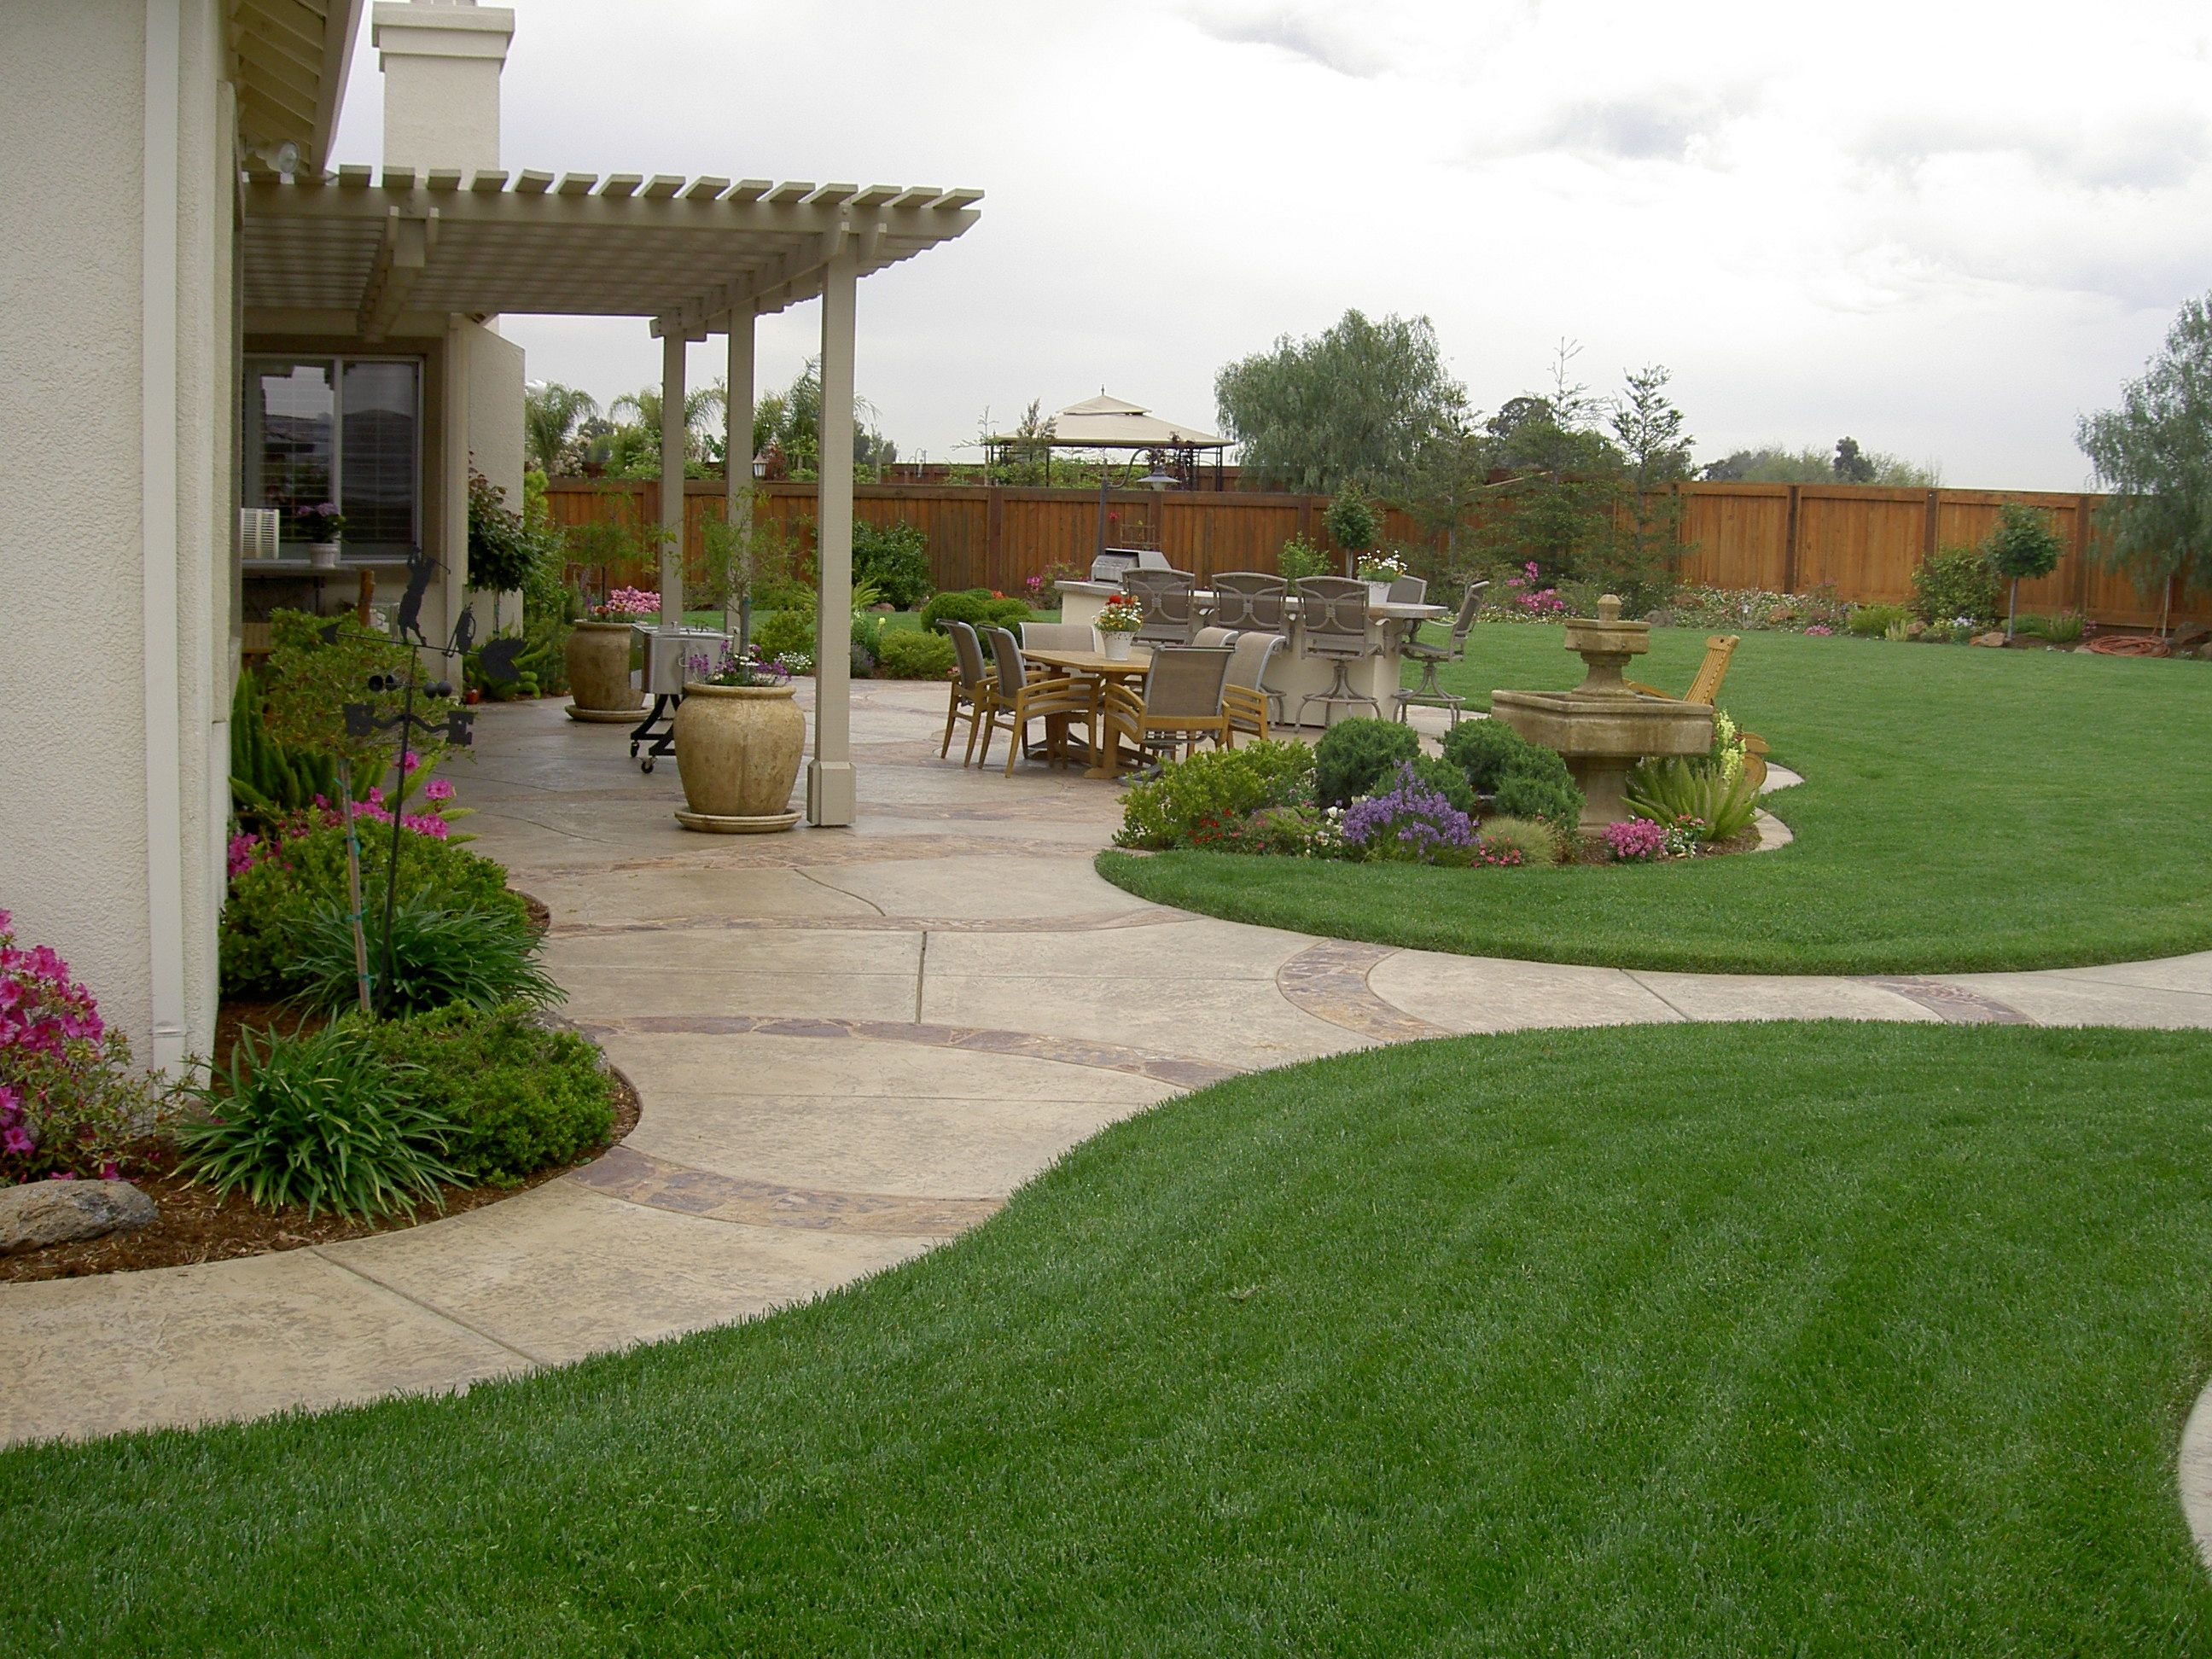 20 Awesome Landscaping Ideas For Your Backyard Gardensoutdoor for Backyard Renovation Ideas Pictures